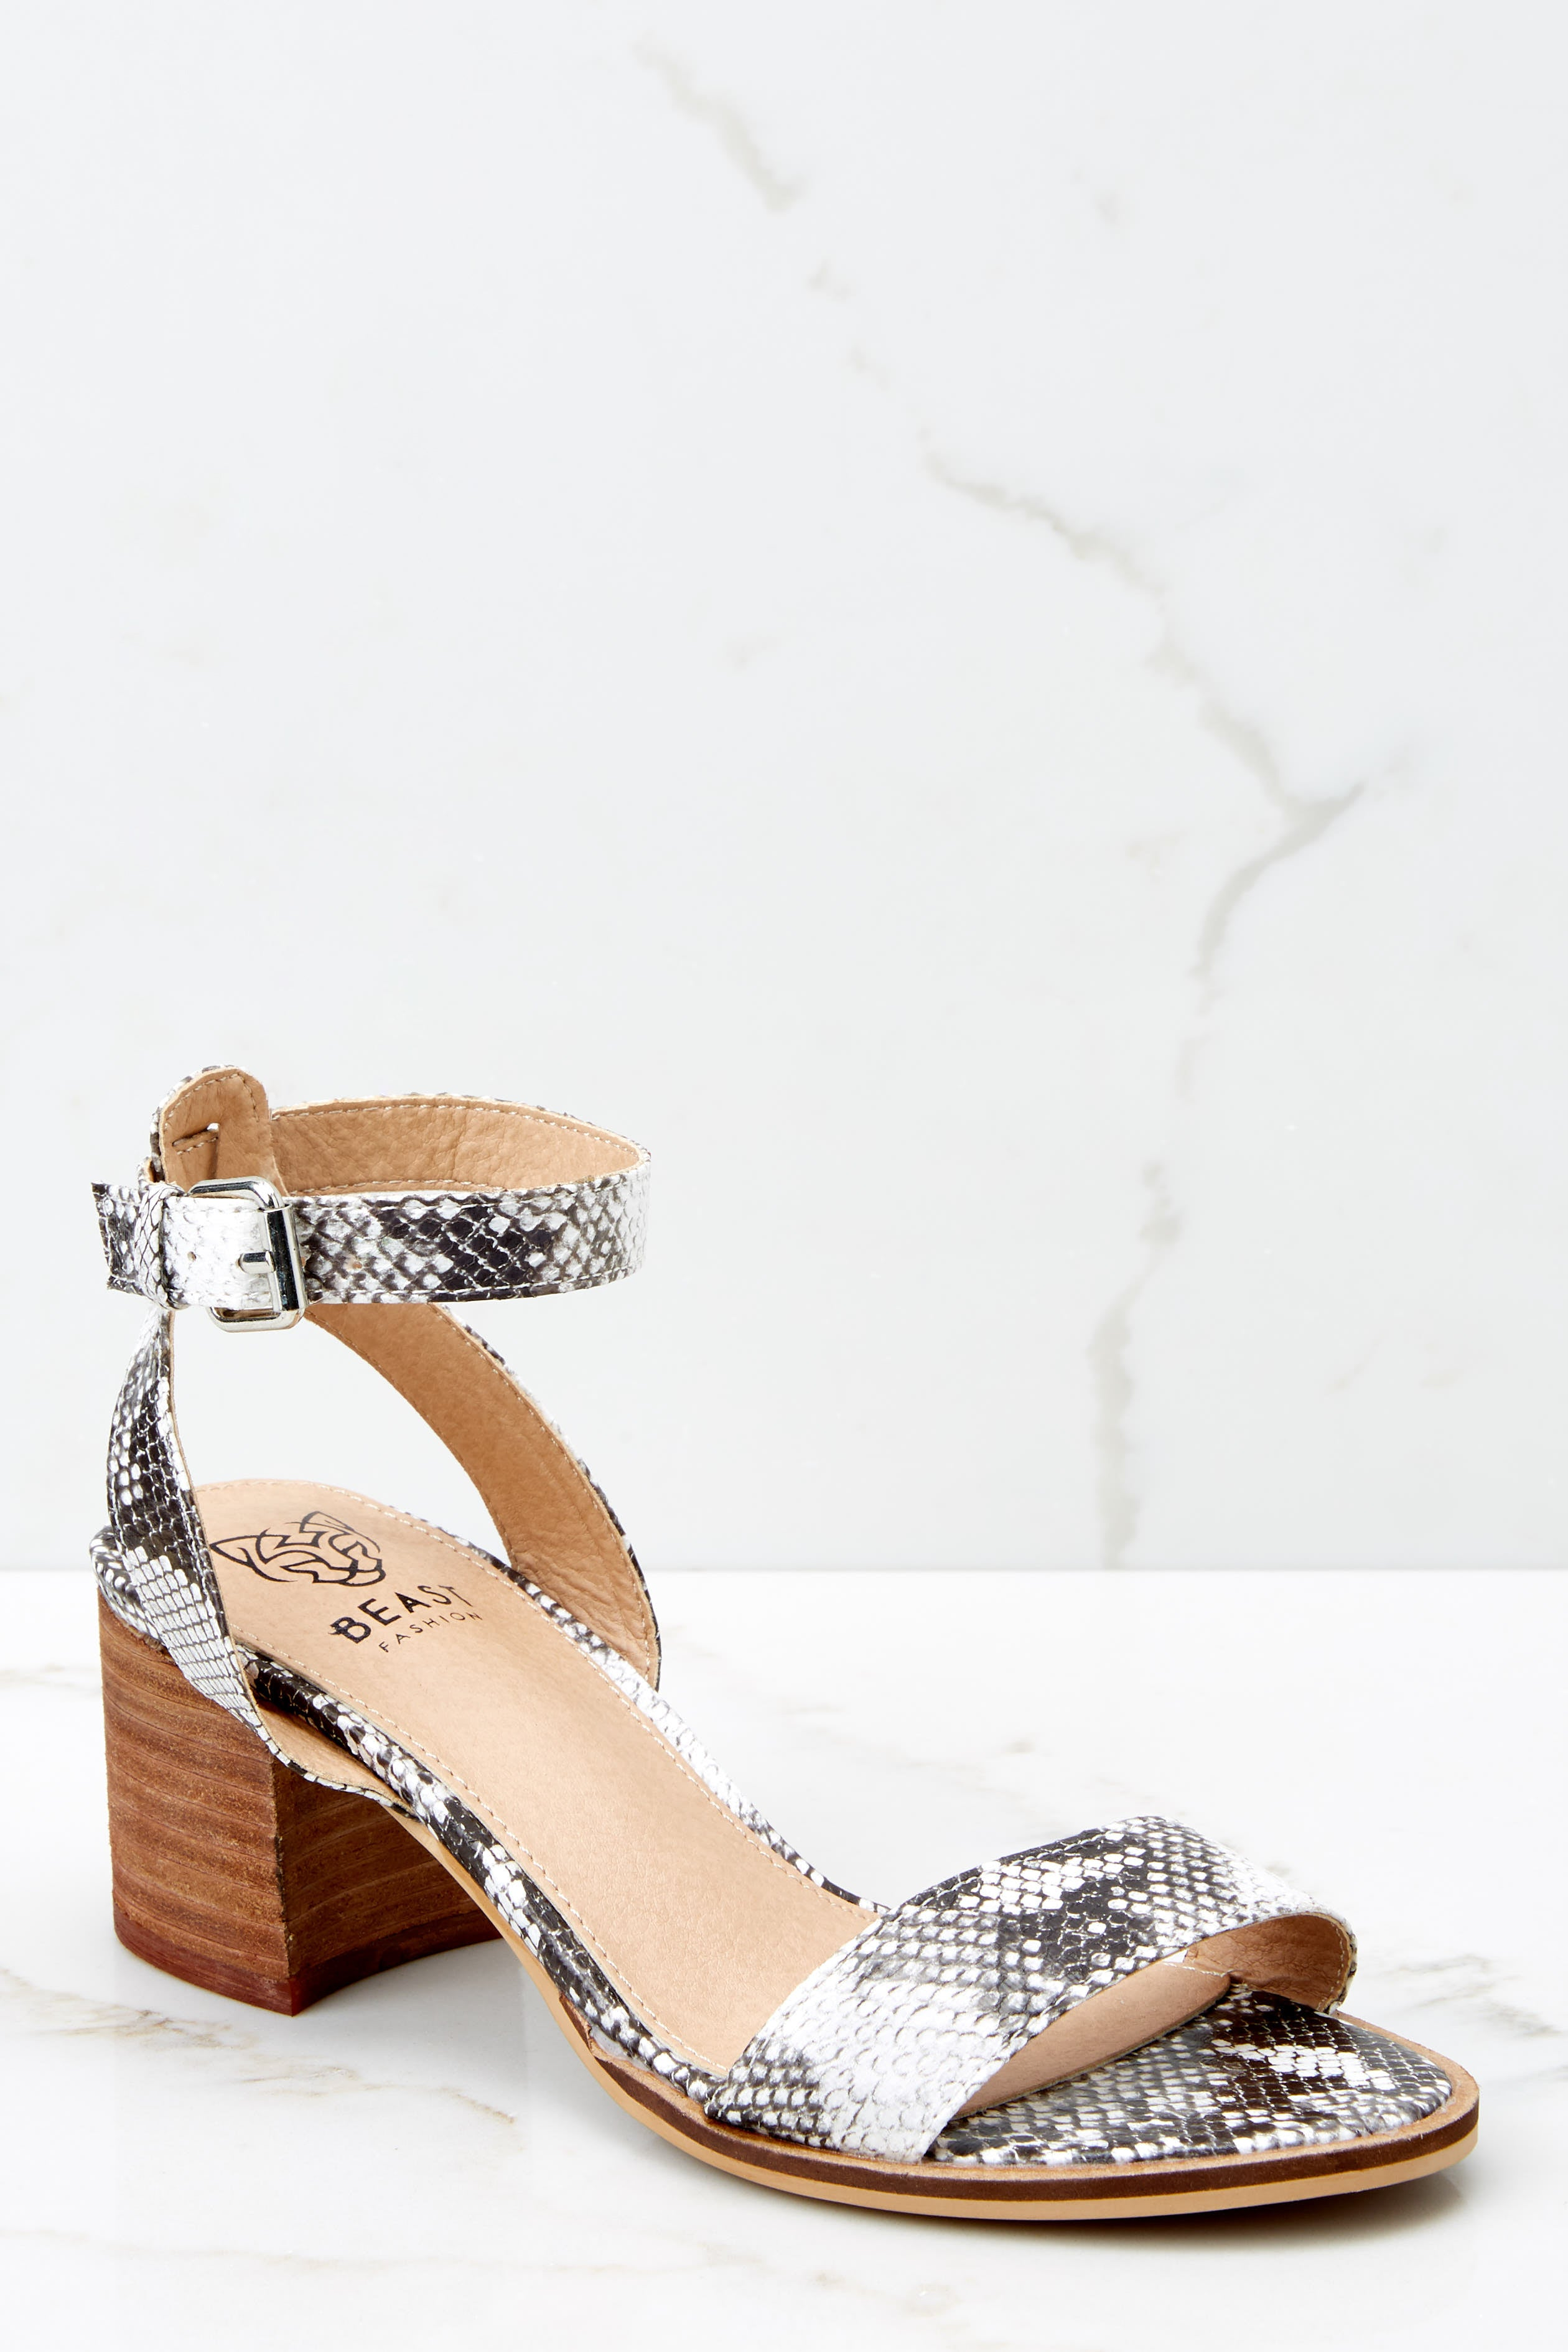 1 Going Up And Up Snakeskin Ankle Strap Heels at reddress.com